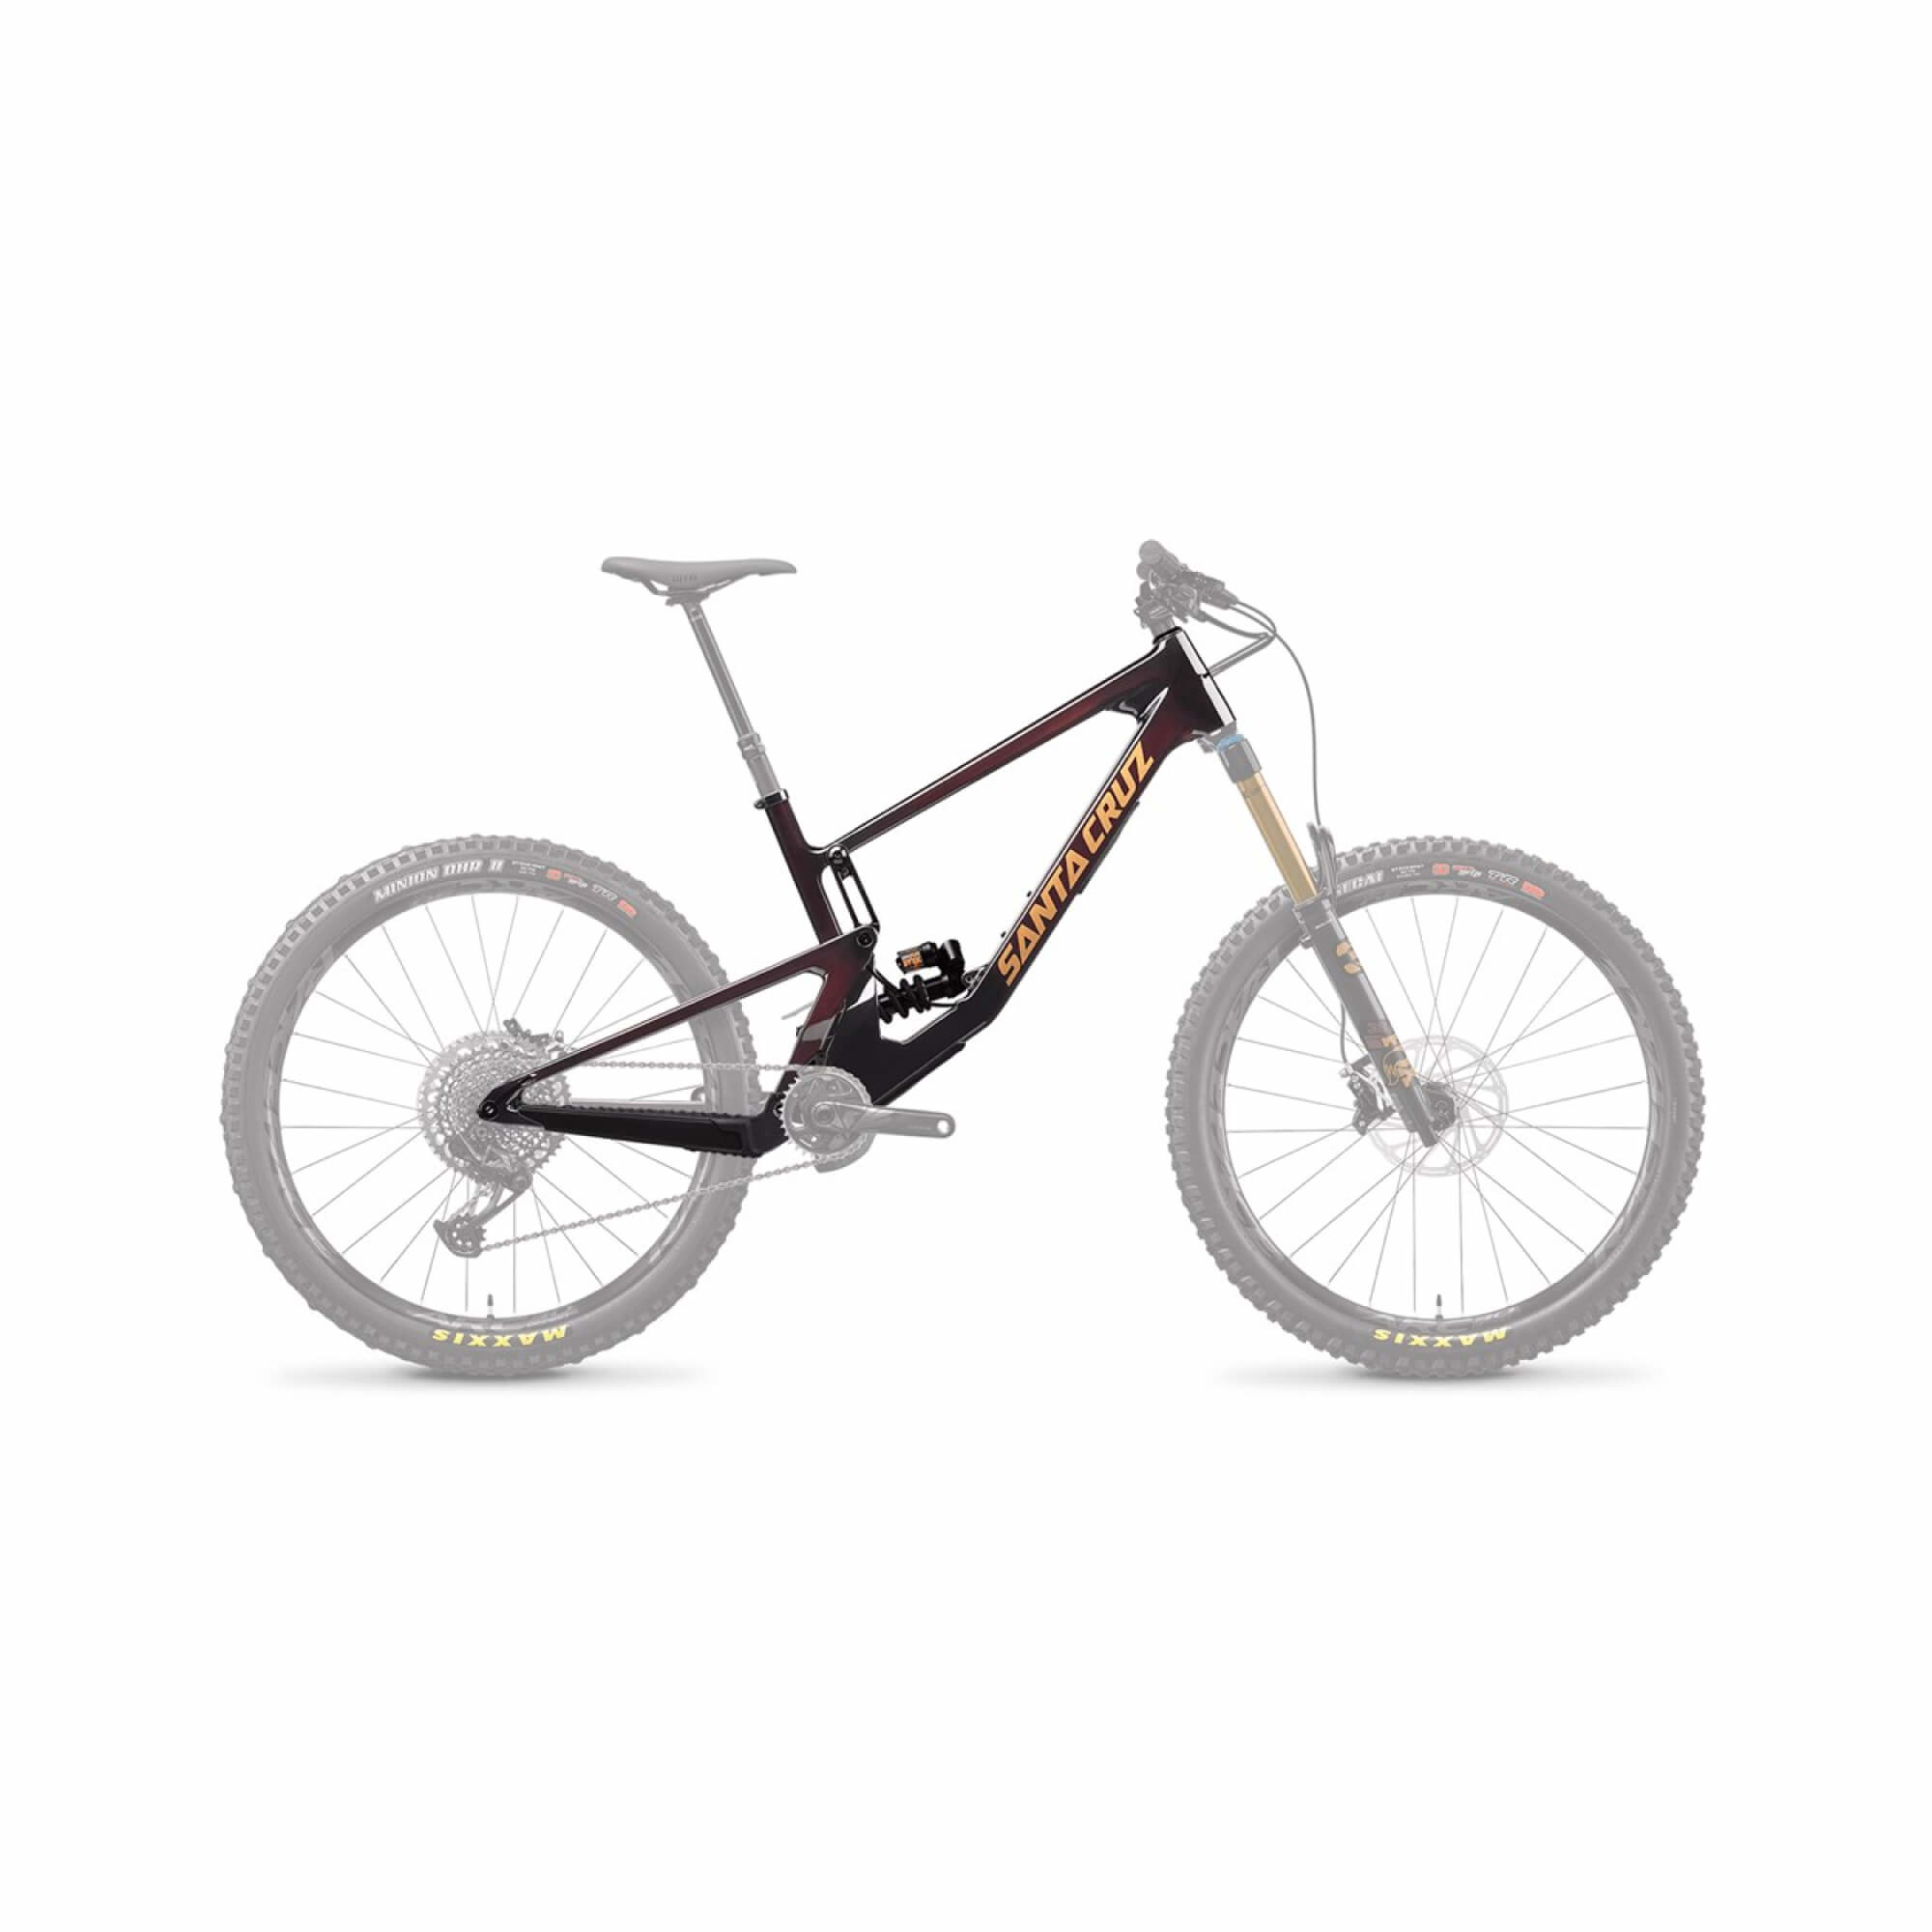 Nomad 5.0 CC 27.5 Frame Fox DHX2 Factory Coil Oxblood 2021-1